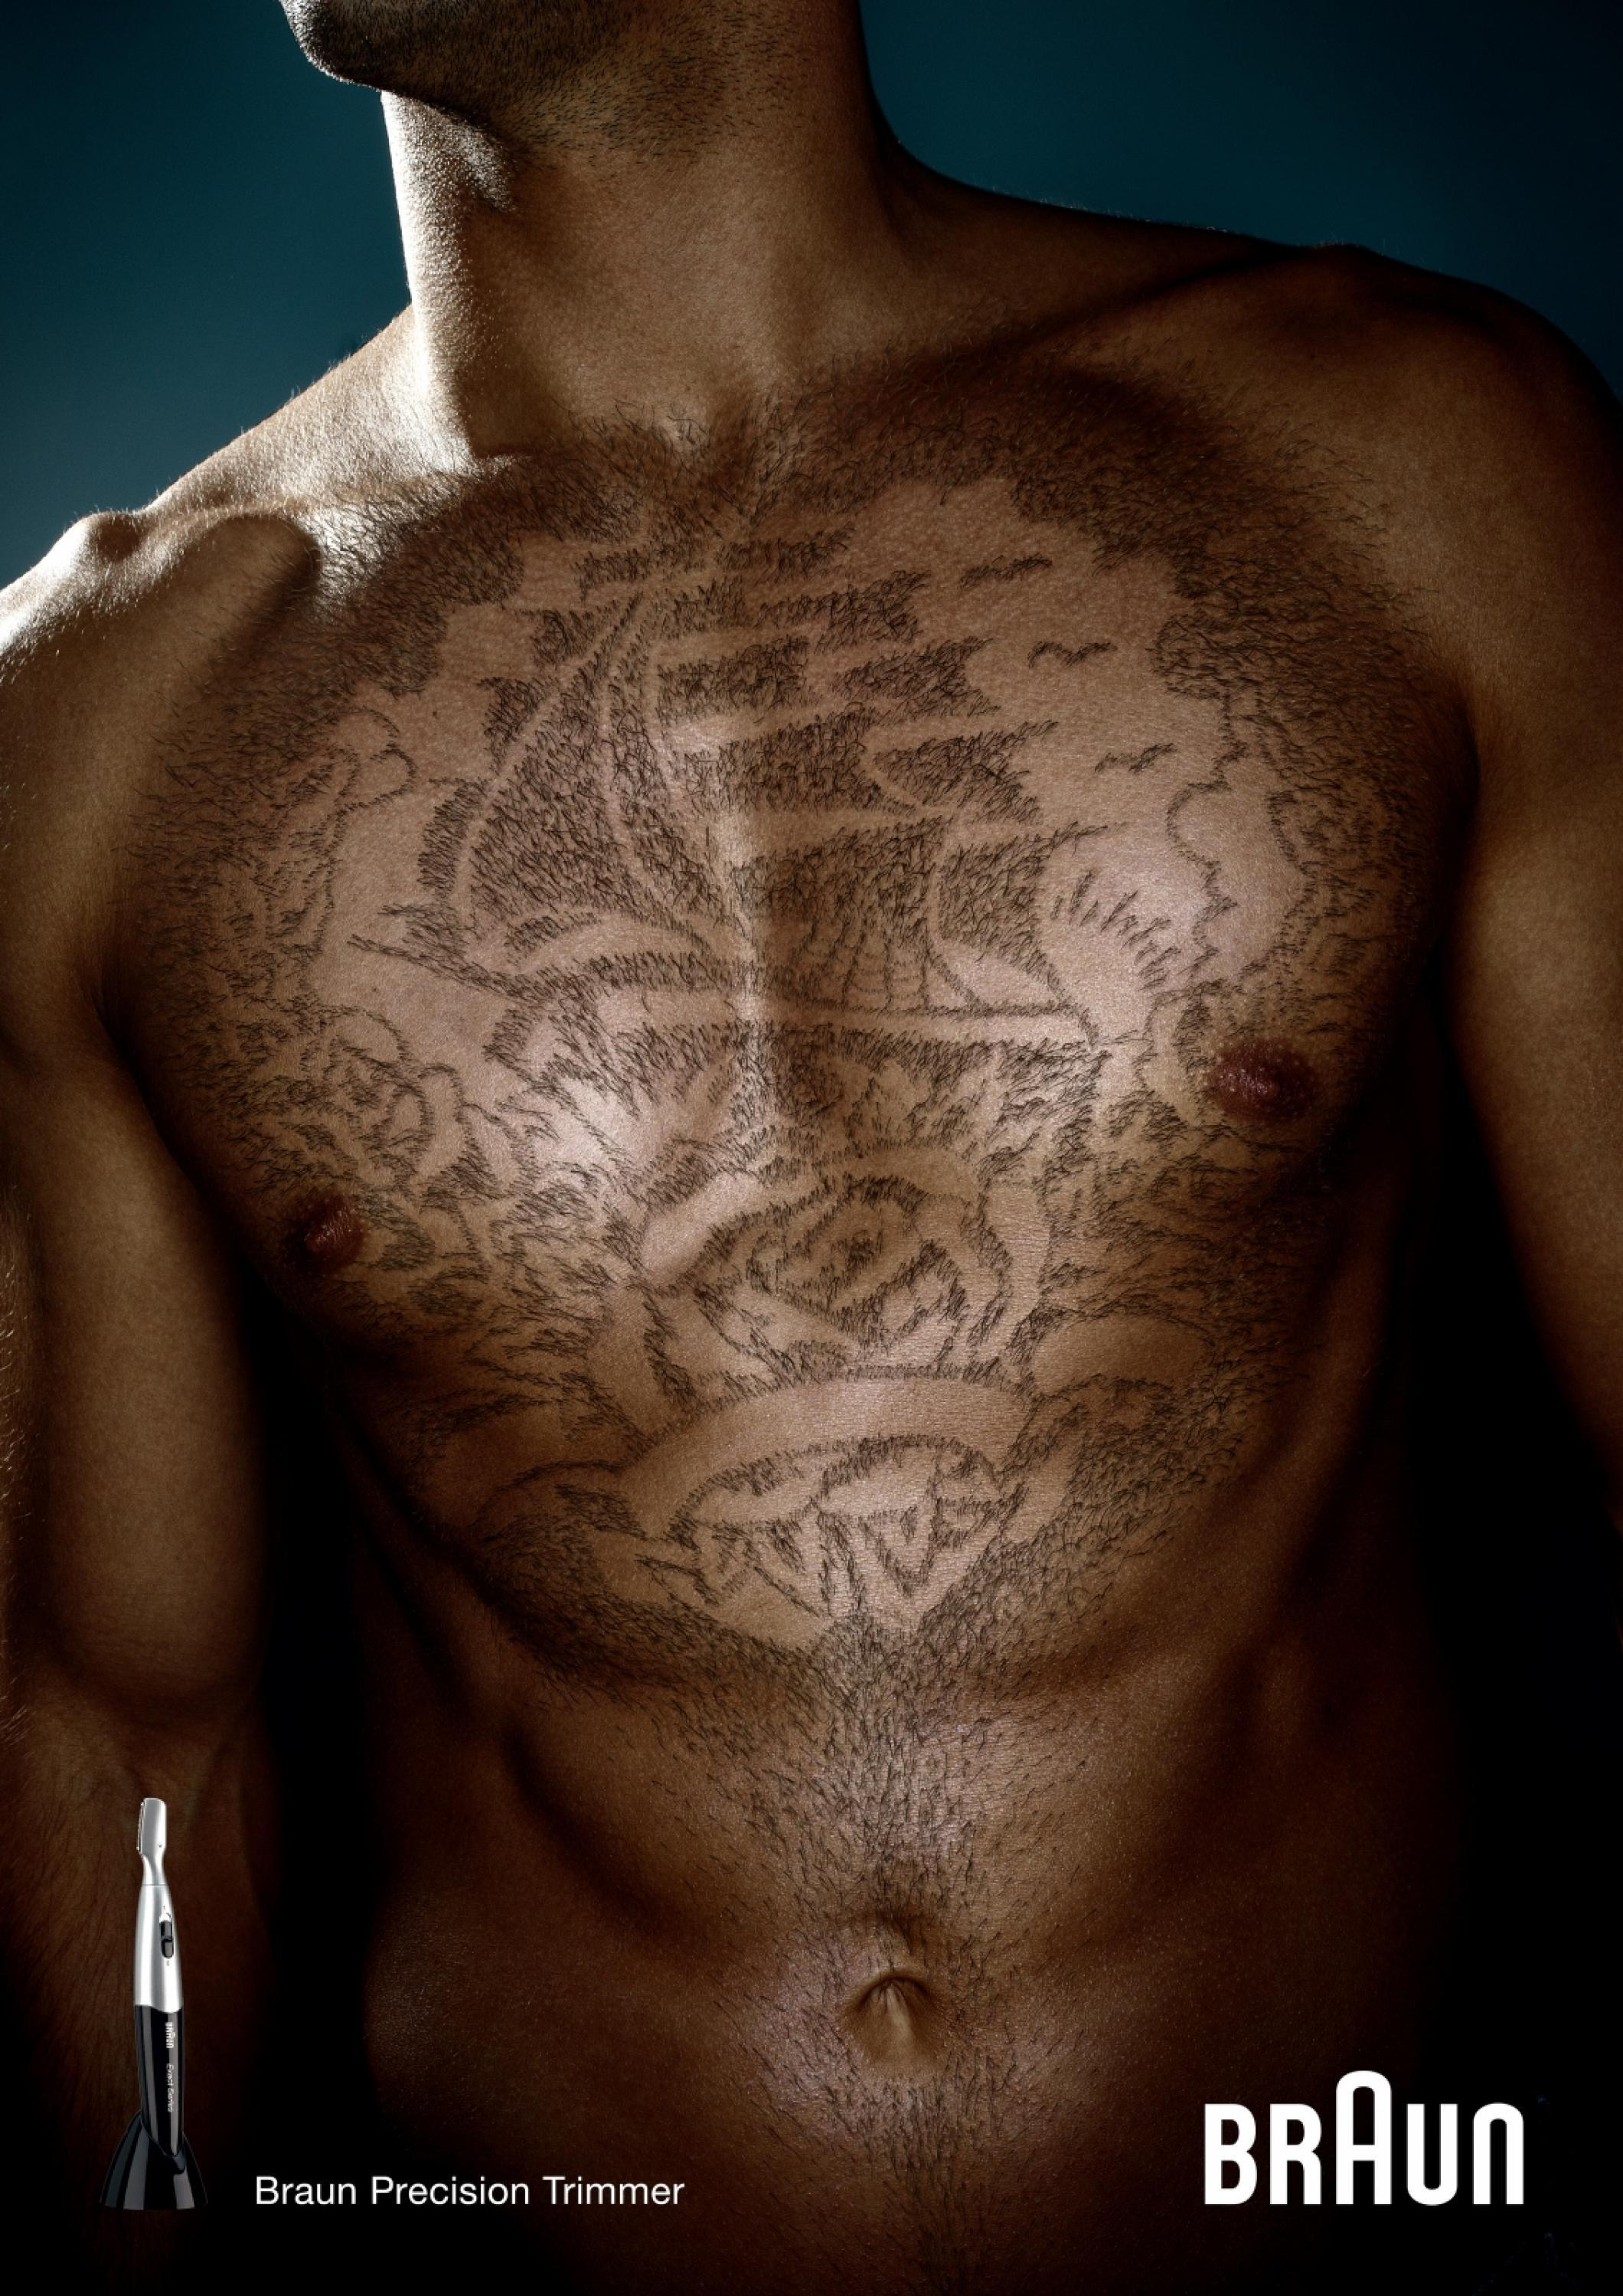 Cool Chest Tattoo Like Hair: Only Selected Creativity - Braun Precision